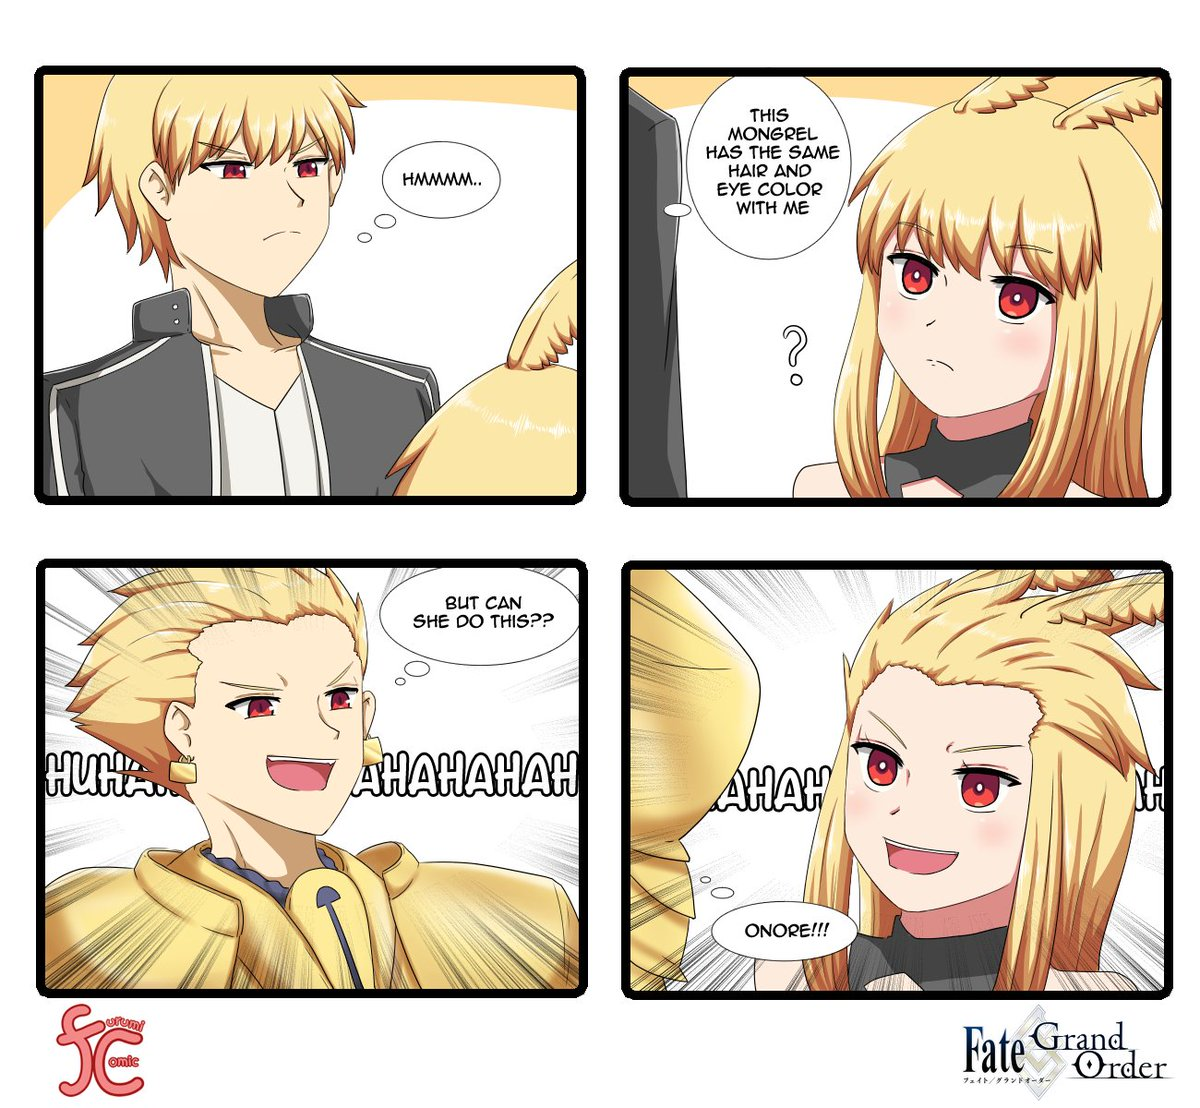 When Gil found out he has the same hair and eye color with Thrud #FGO https://t.co/B8LB7SXRSM https://t.co/O1h4JTTlqU